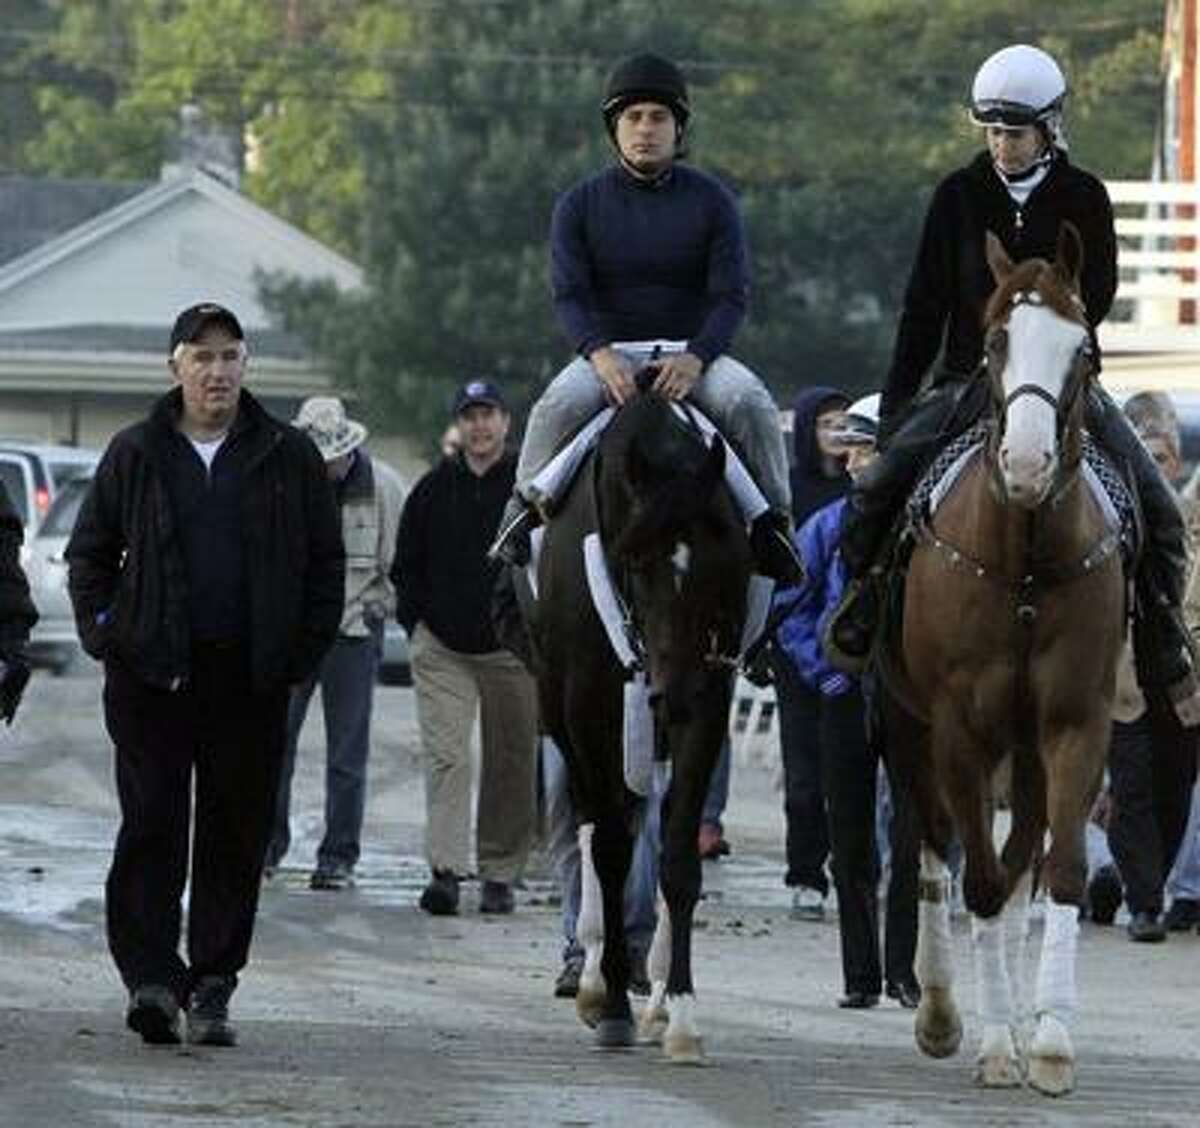 Trainer Nick Zito, left, walks with Exercise rider Carlos Correa as they take Kentucky Derby entrant Dialed In for a workout at Churchill Downs Thursday, May 5, 2011, in Louisville, Ky. At right is assistant trainer Stacy Prior. (AP Photo/Garry Jones)